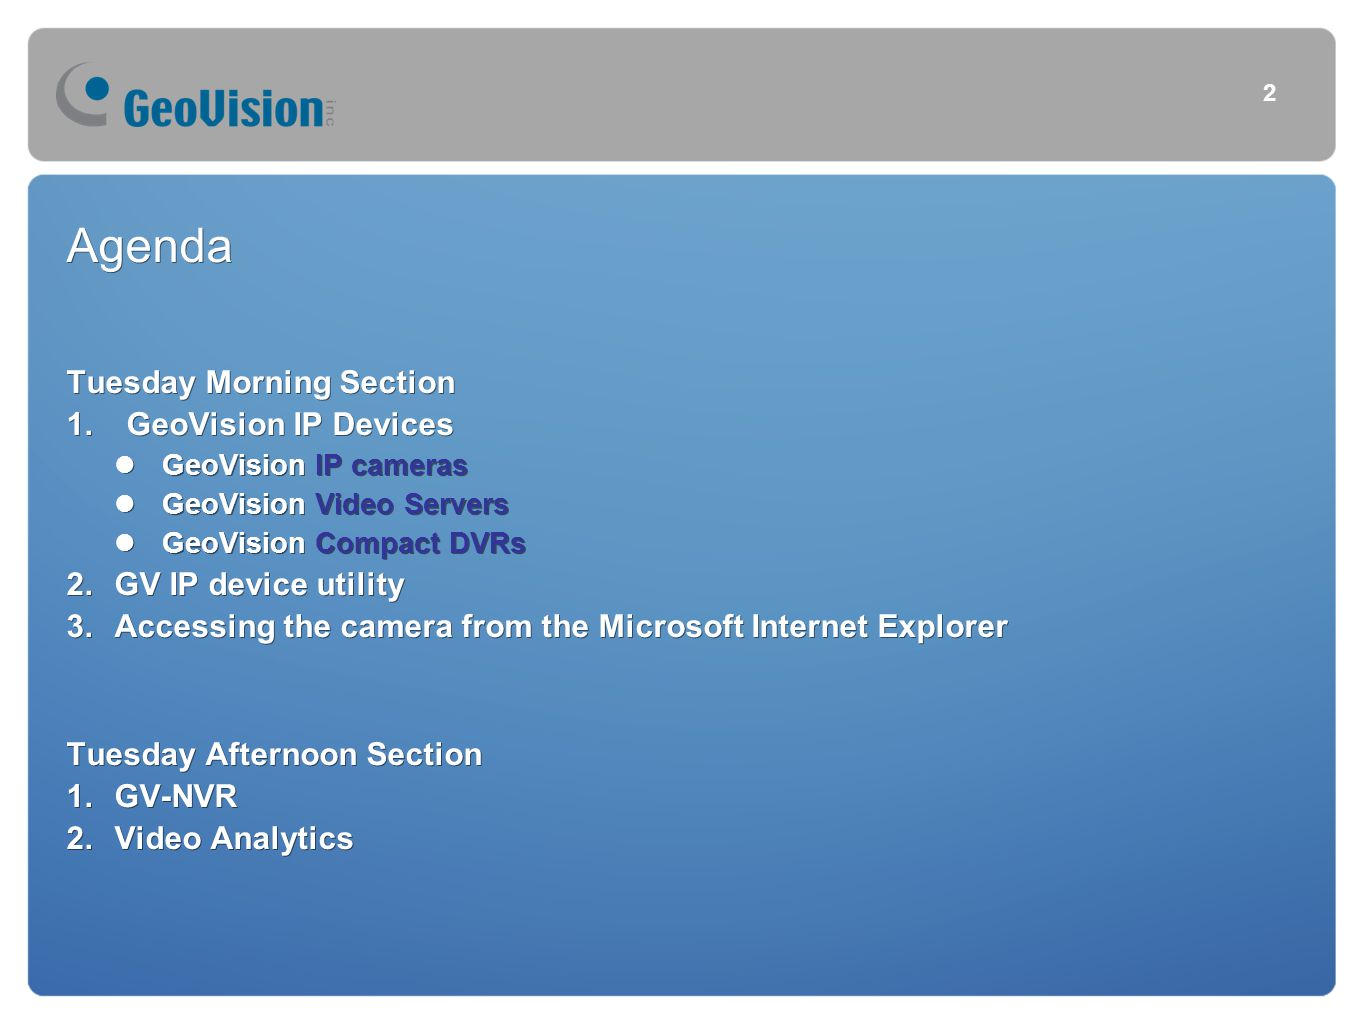 Agenda Tuesday Morning Section 1.GeoVision IP Devices GeoVision IP cameras GeoVision Video Servers GeoVision Compact DVRs 2.GV IP device utility 3.Accessing the camera from the Microsoft Internet Explorer Tuesday Afternoon Section 1.GV-NVR 2.Video Analytics Agenda Tuesday Morning Section 1.GeoVision IP Devices GeoVision IP cameras GeoVision Video Servers GeoVision Compact DVRs 2.GV IP device utility 3.Accessing the camera from the Microsoft Internet Explorer Tuesday Afternoon Section 1.GV-NVR 2.Video Analytics 2